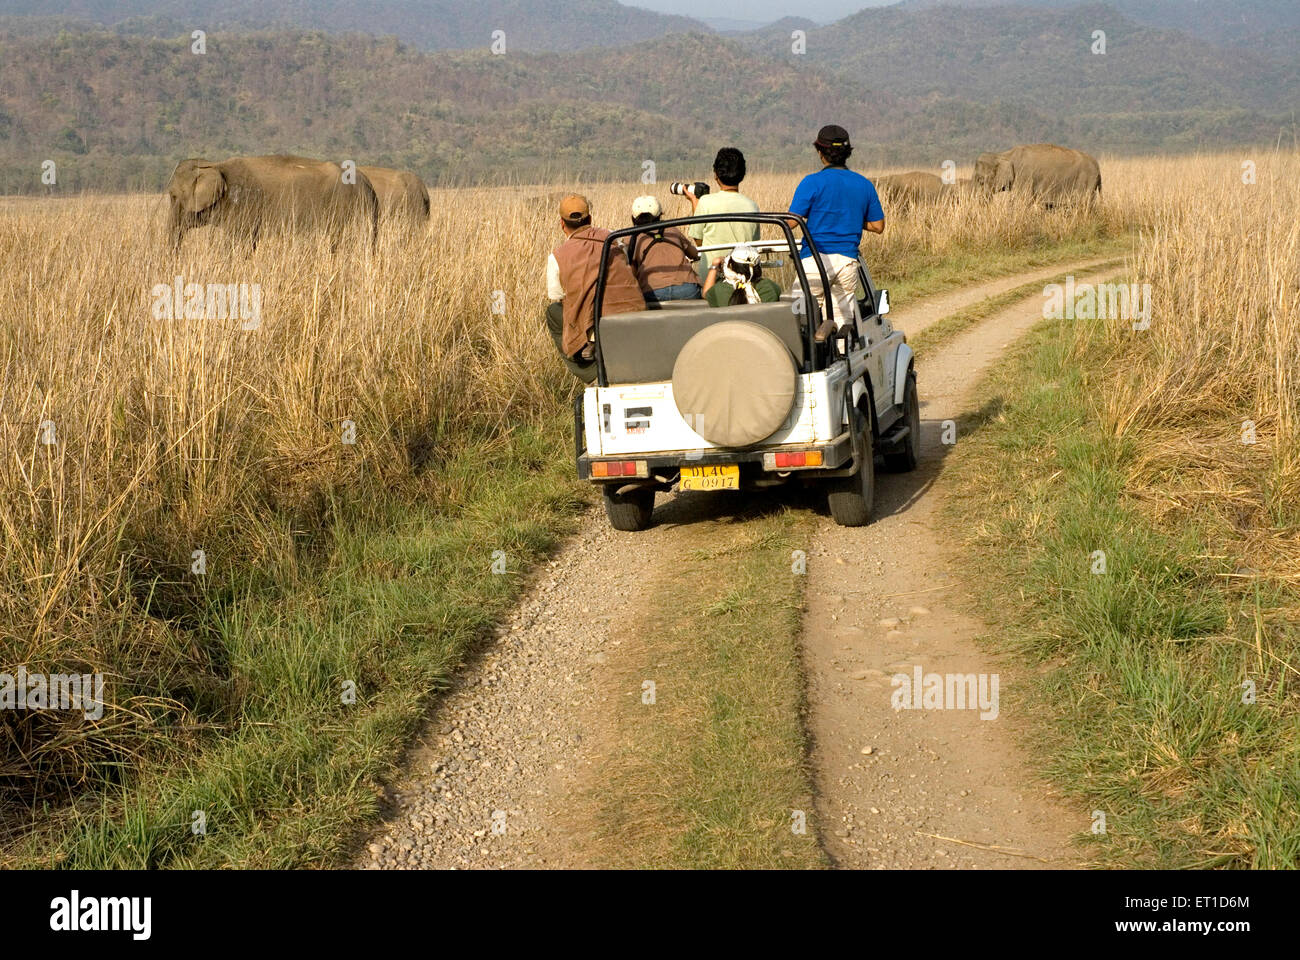 Tourists watching wild elephants from open jeep in Jim Corbett forest Garhwal Uttaranchal Uttarakhand India - Stock Image